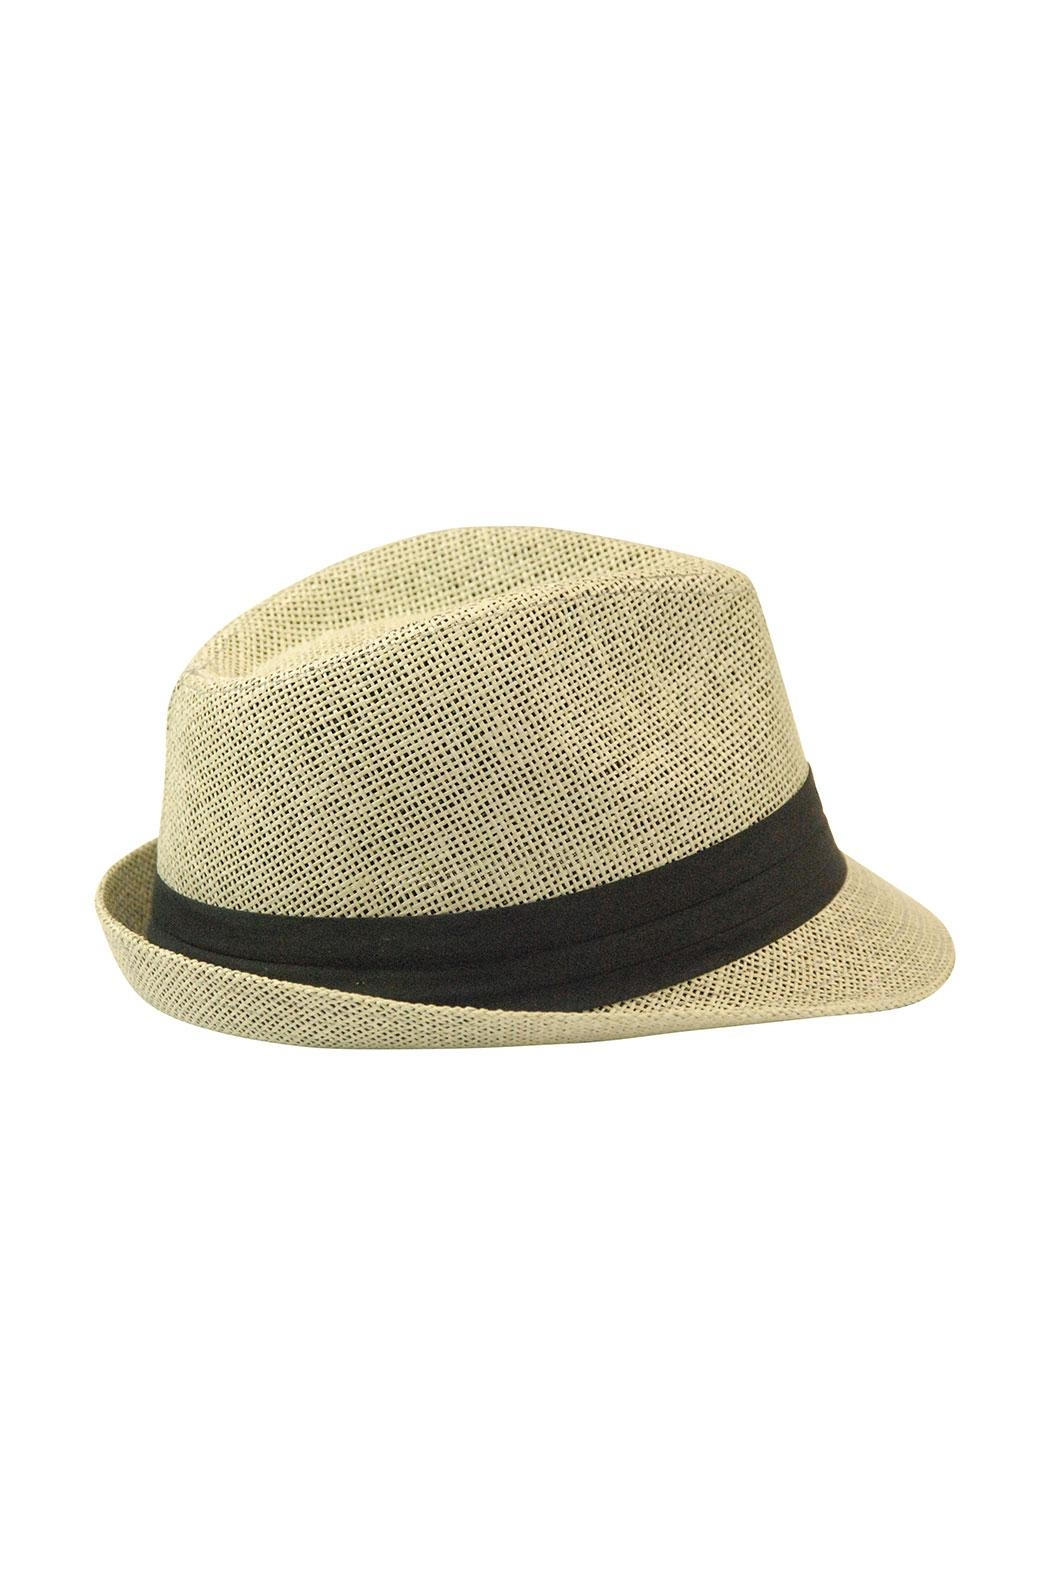 The Hatter Company Floral Patch Fedora Hat - Side Cropped Image